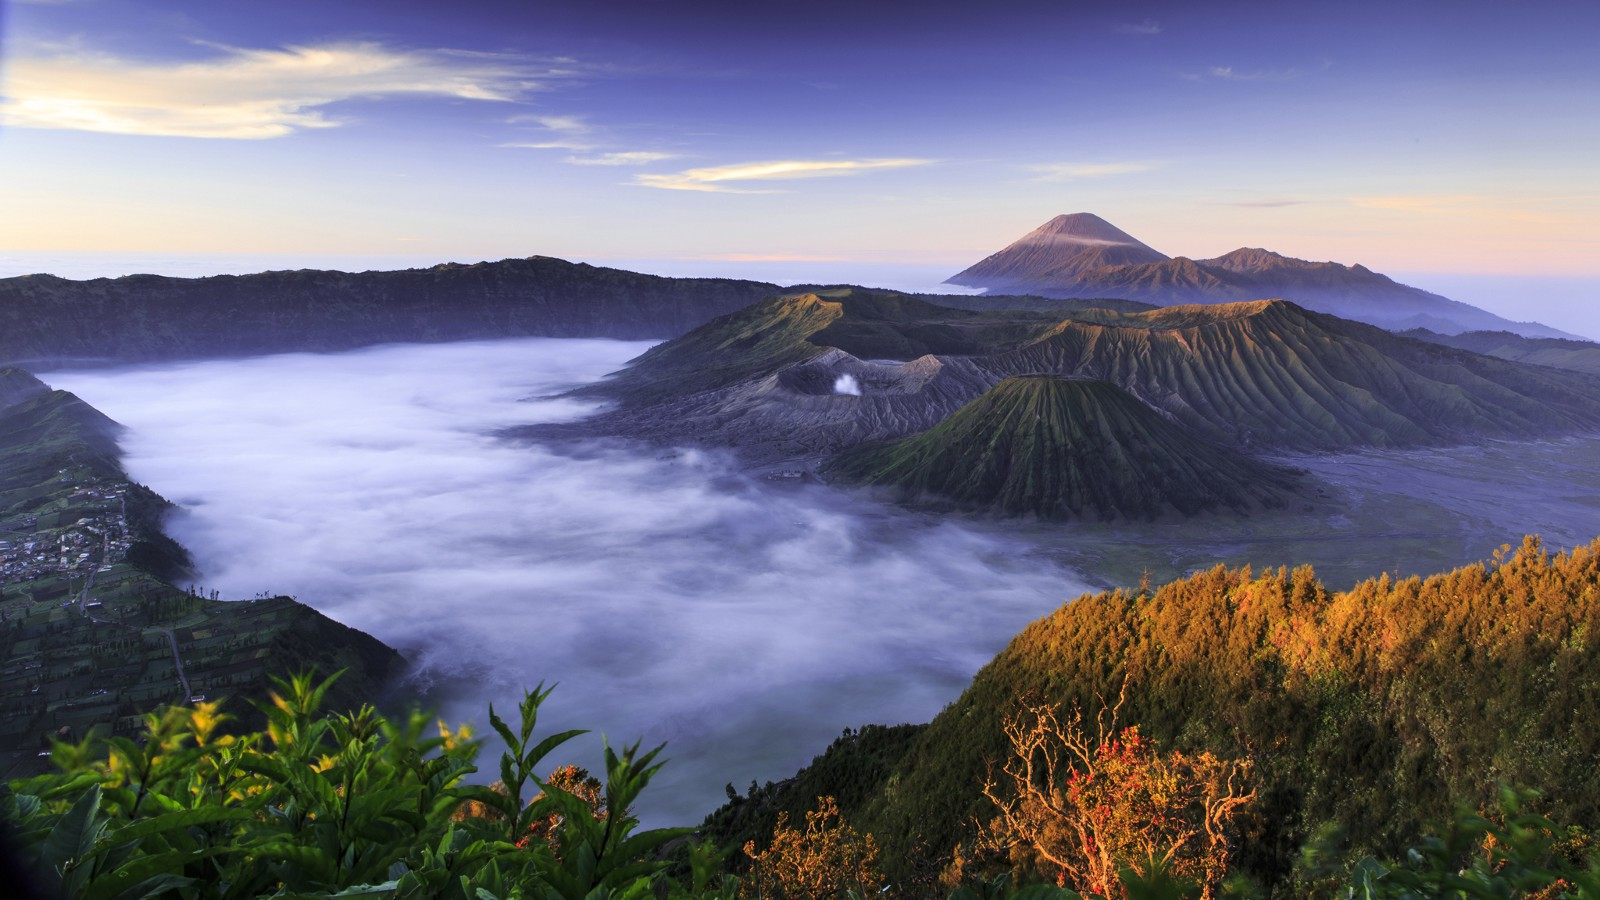 Sunrise in Bromo-Tengger-Semeru National Park on the island of Java in Indonesia